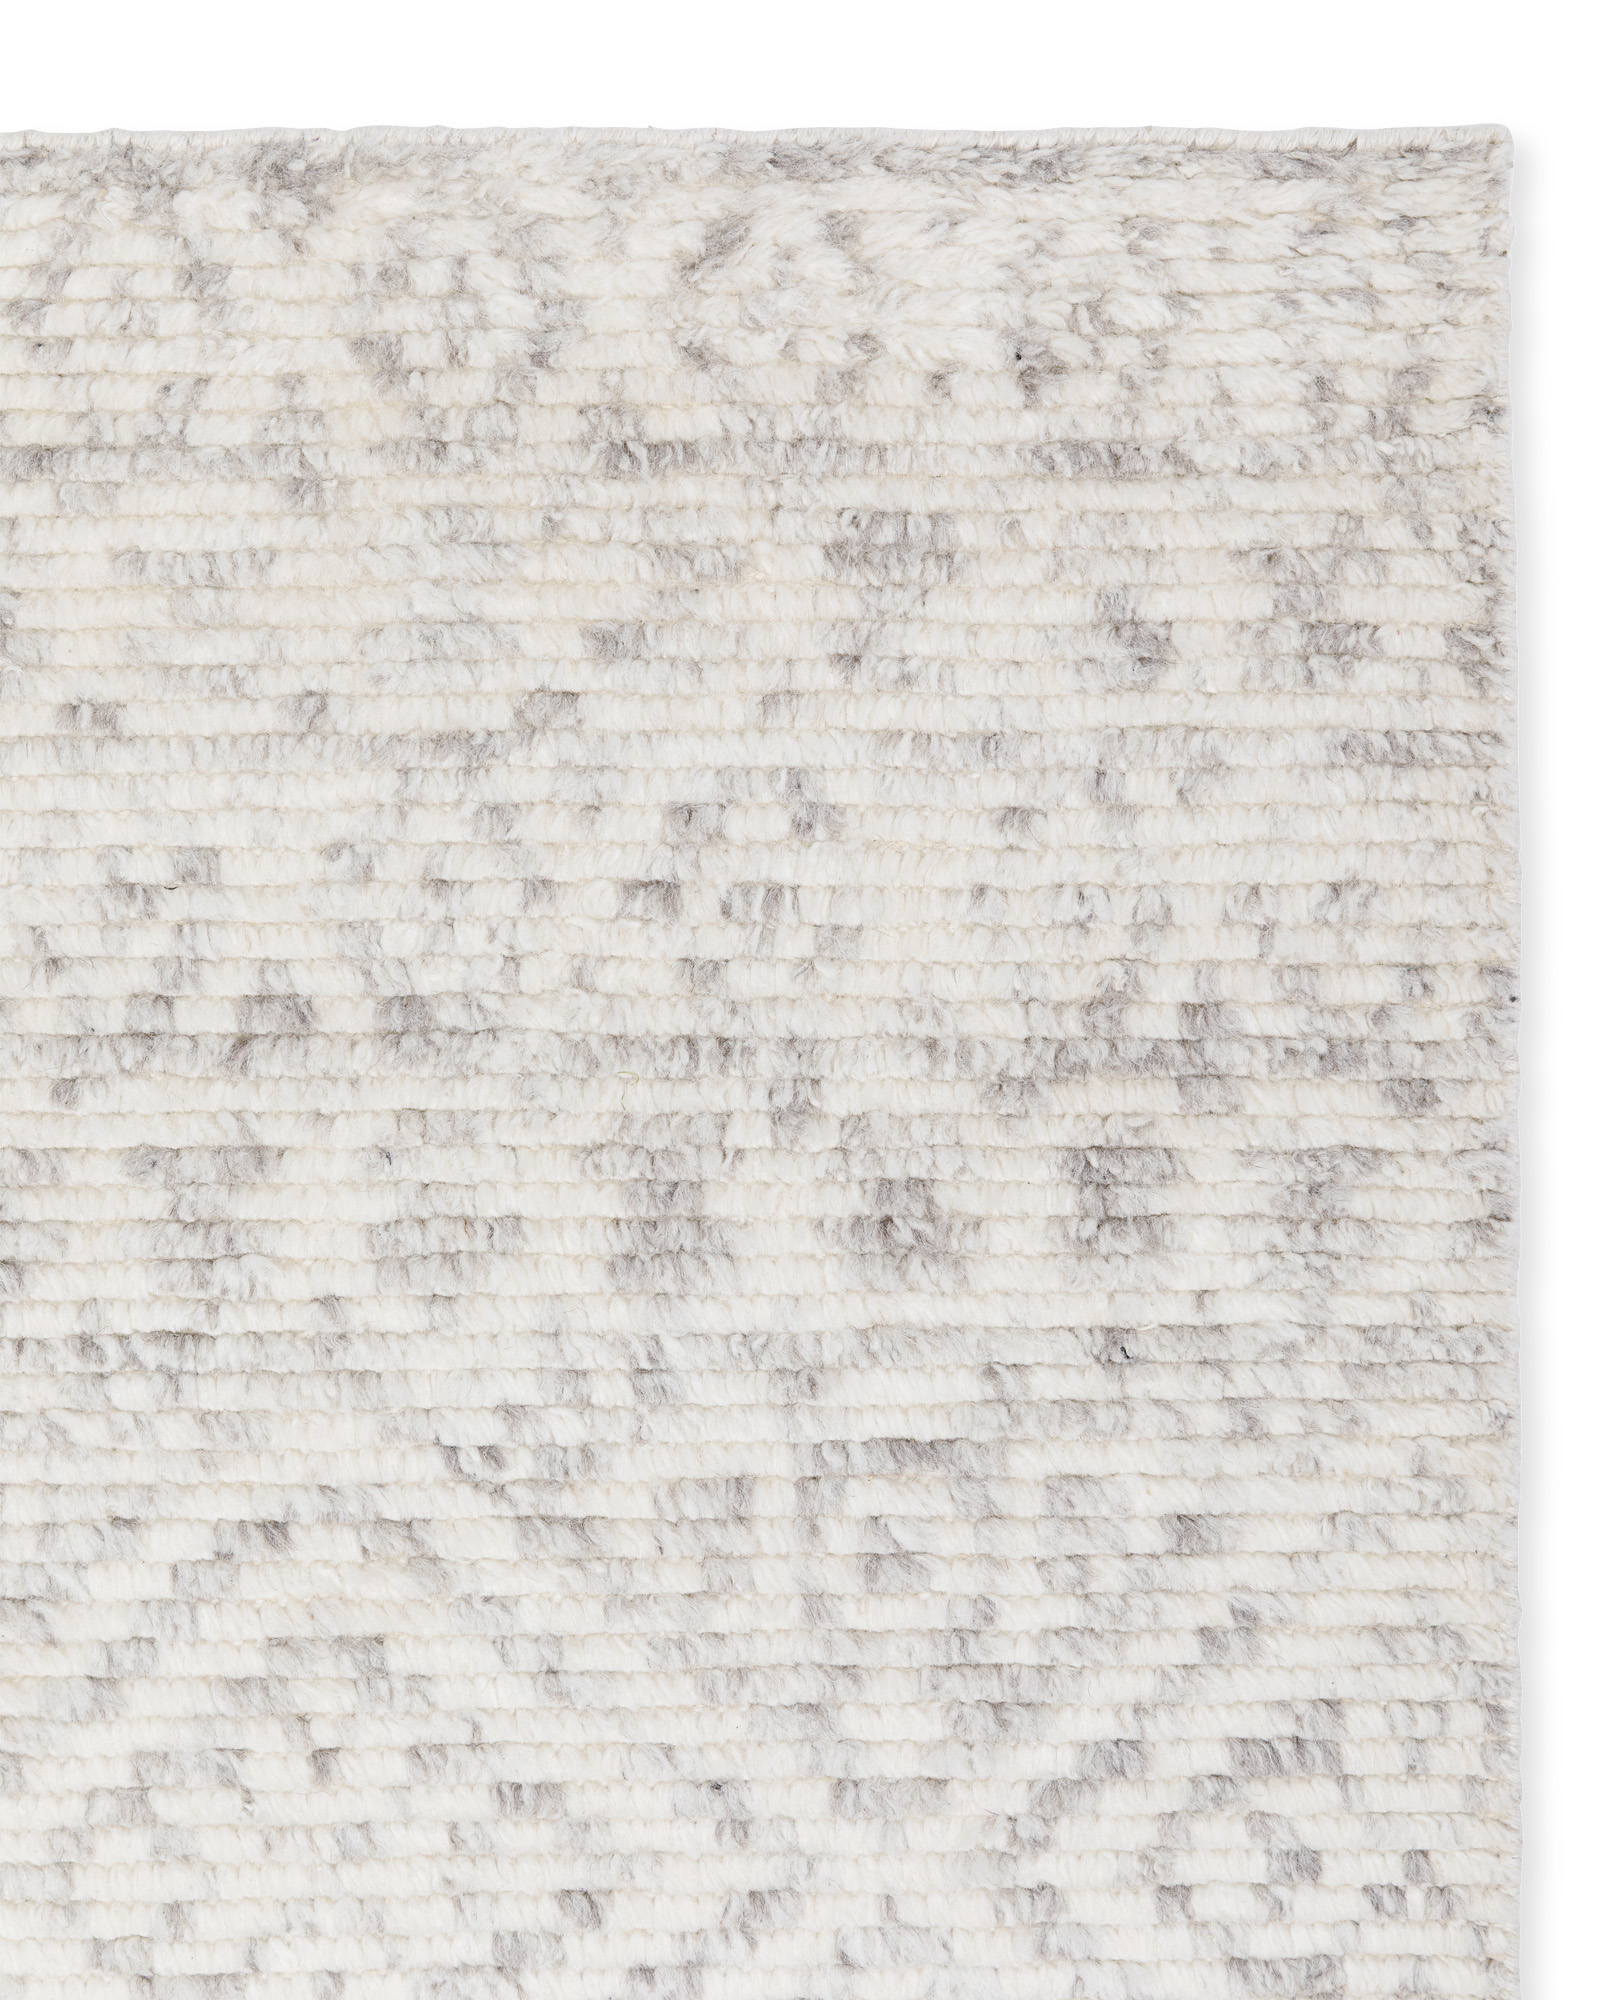 Adelaide Hand-Knotted Rug, Fog